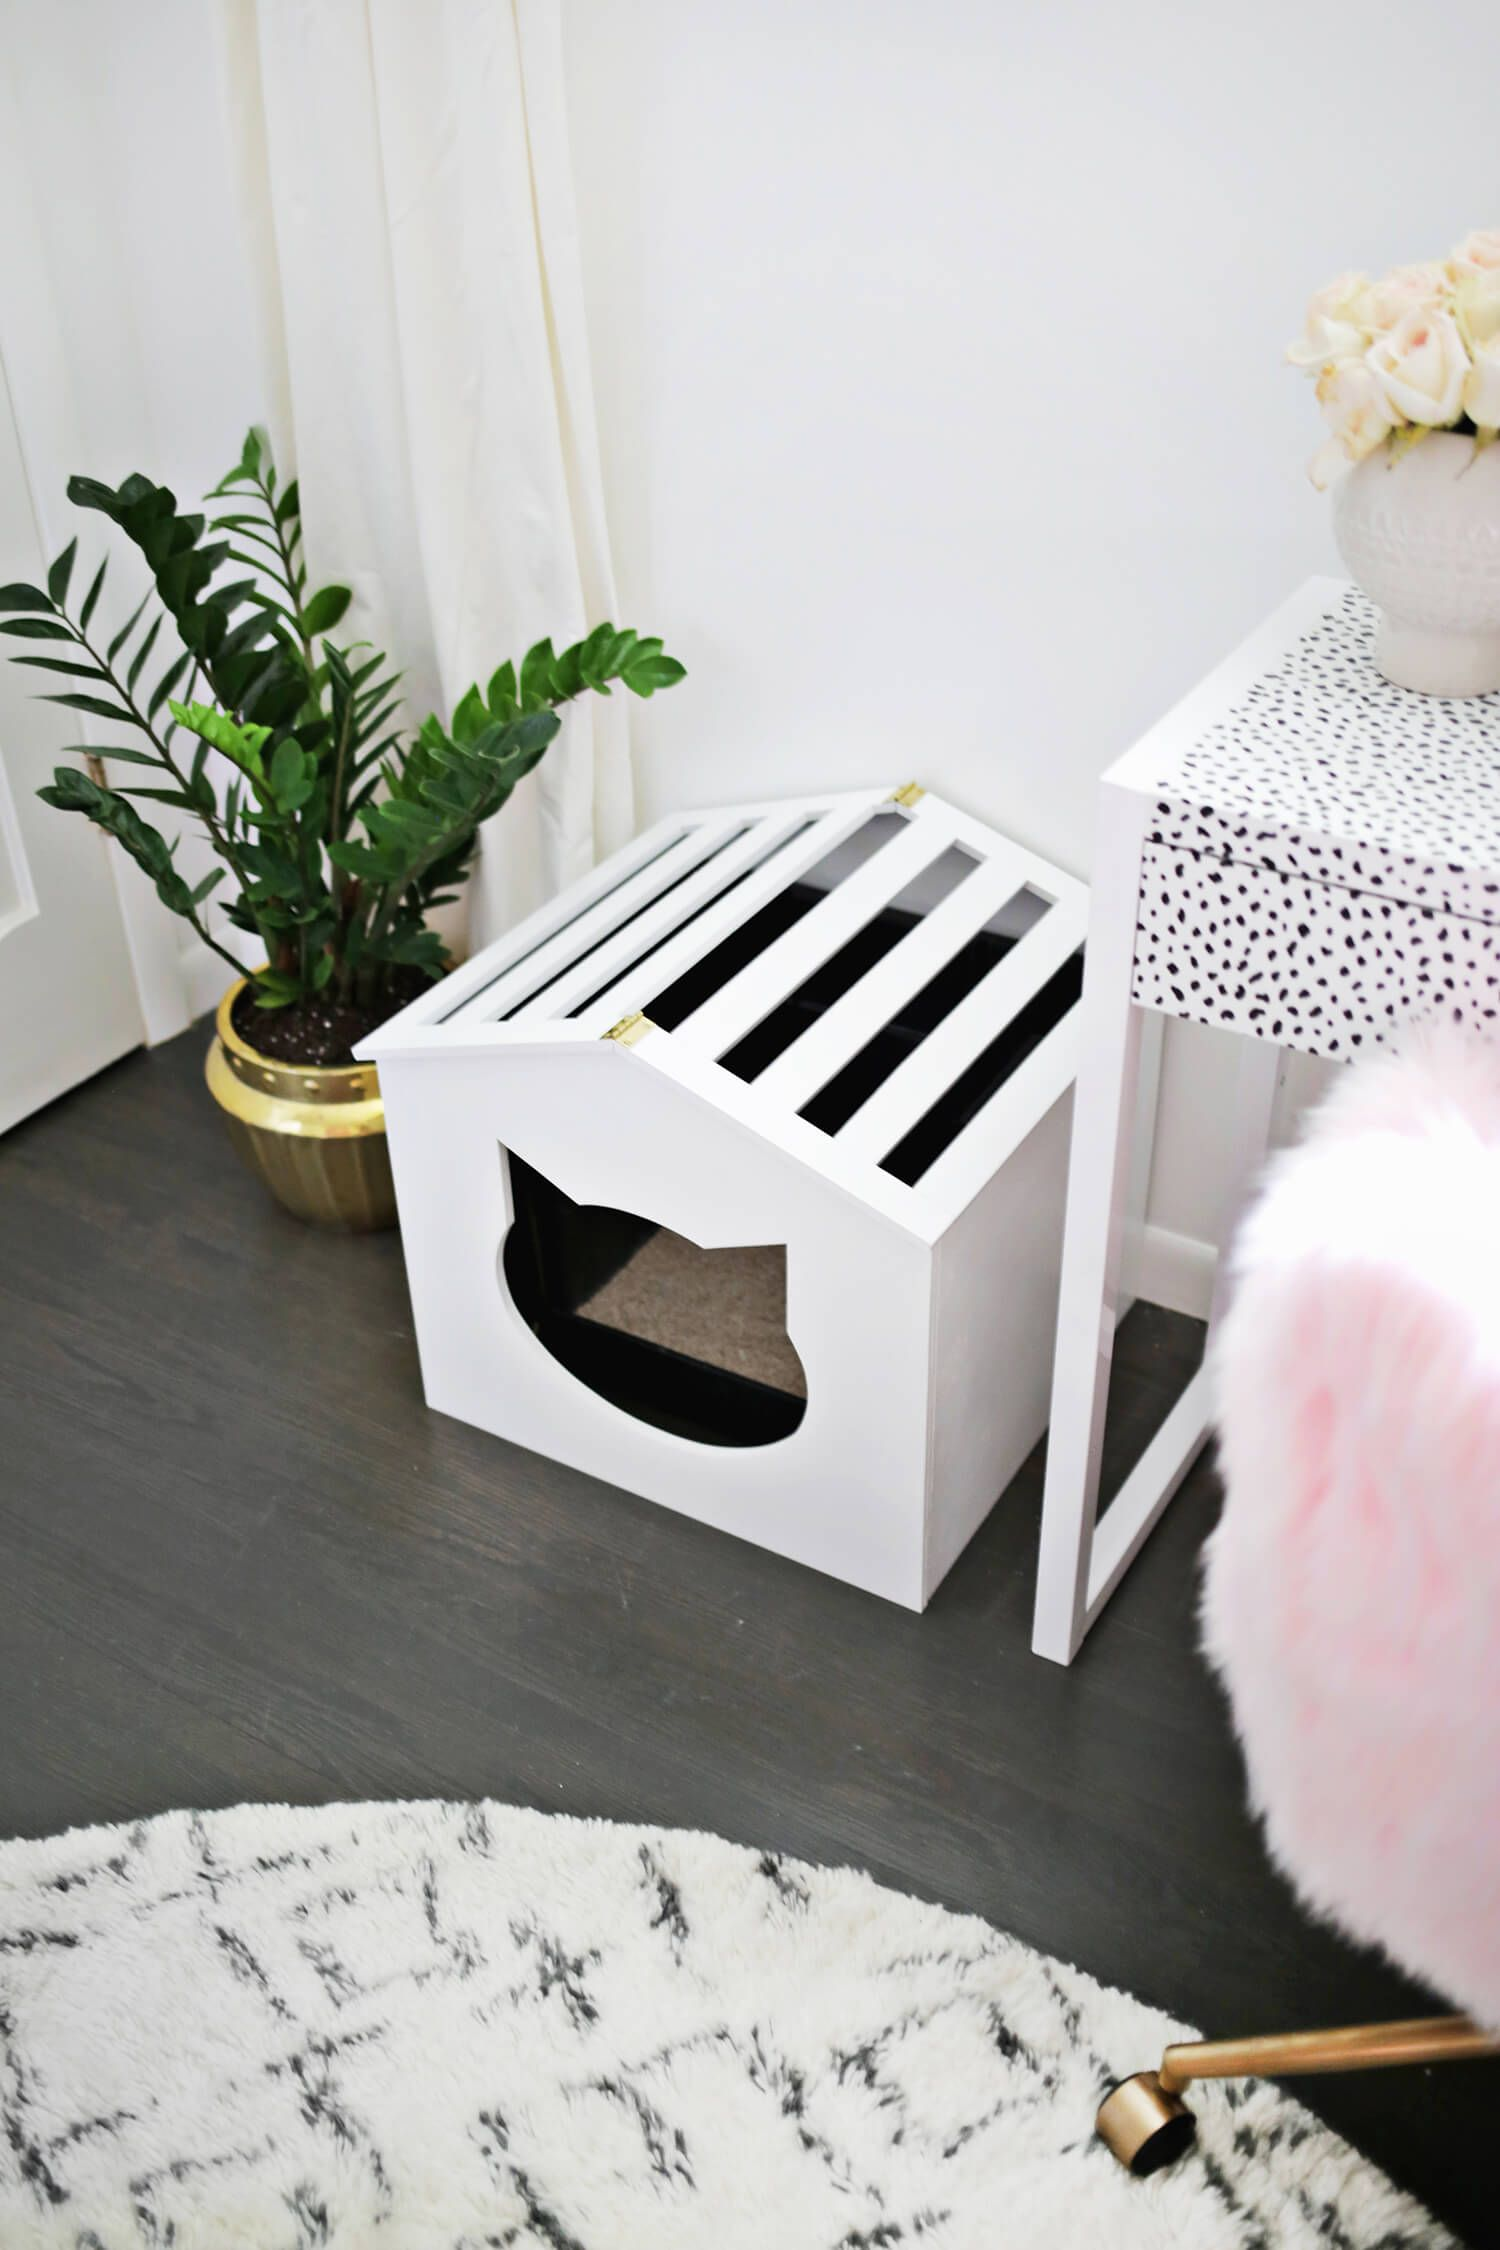 Litter Box Cover Diy Diy Litter Box Litter Box Covers Diy Litter Box Cover